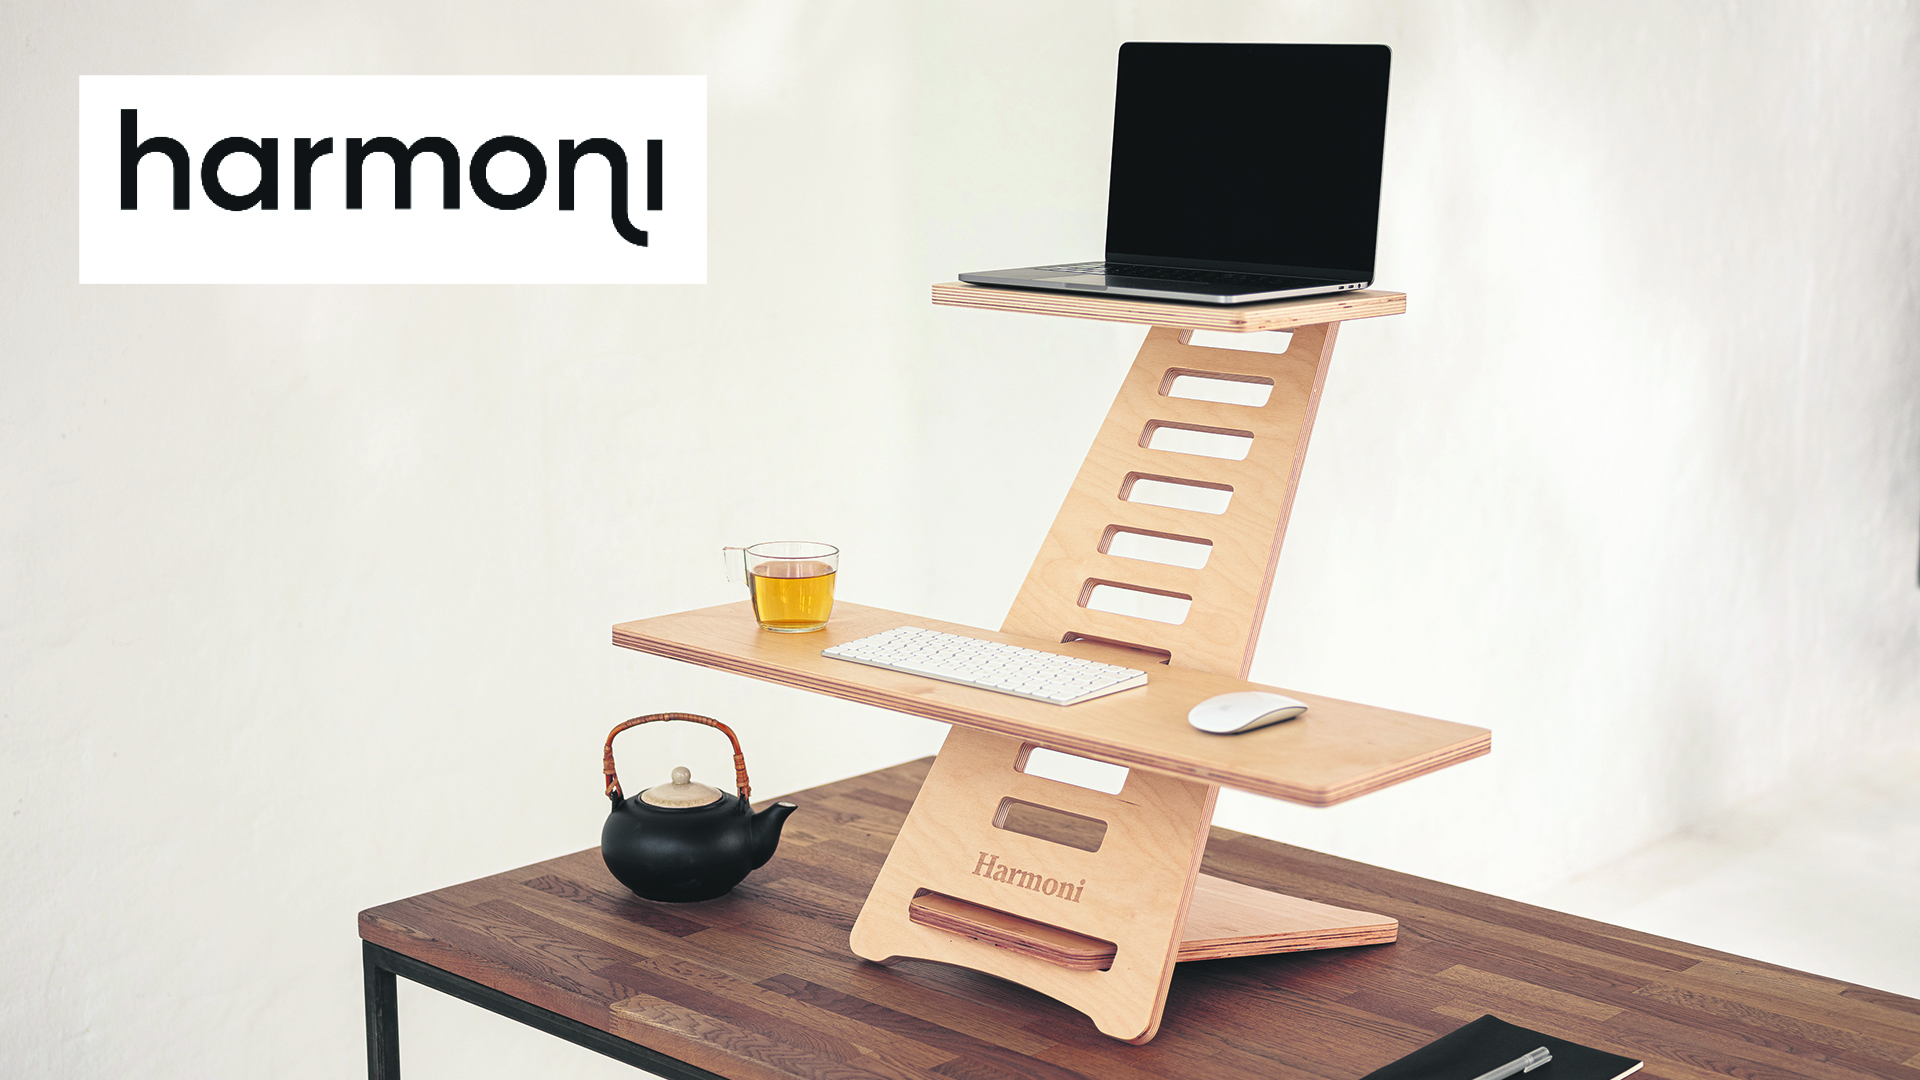 Win a standing to work bundle Worth £259!